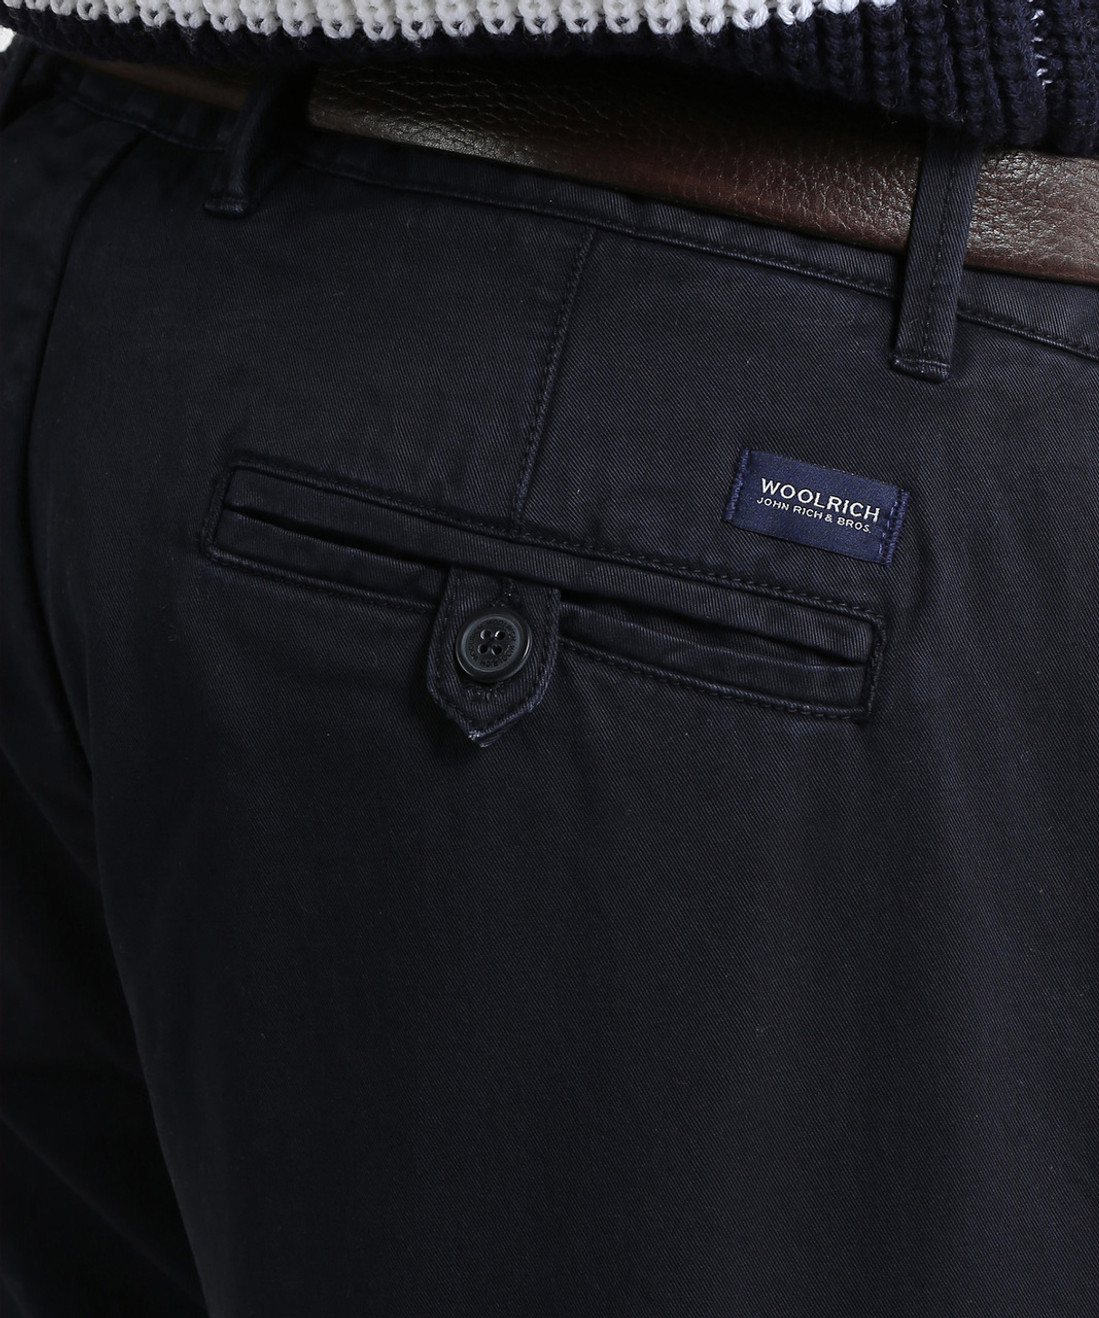 Men's Utility Chino Pants - John Rich & Bros.